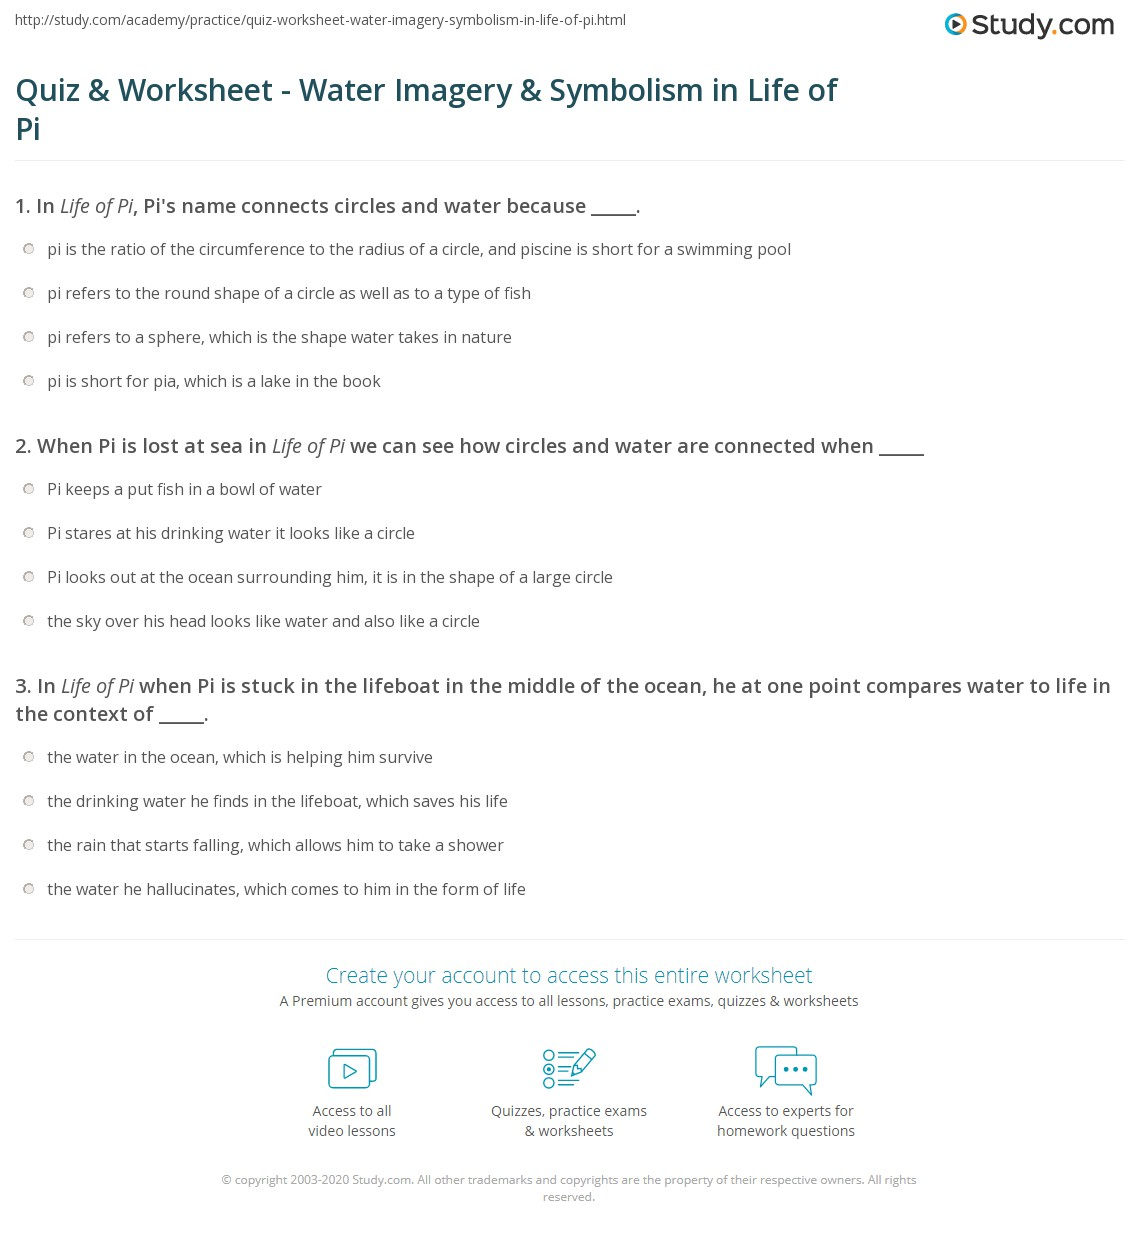 Printables Imagery Worksheets imagery and symbolism worksheets photo album worksheet for kids quiz water in life of pi study com